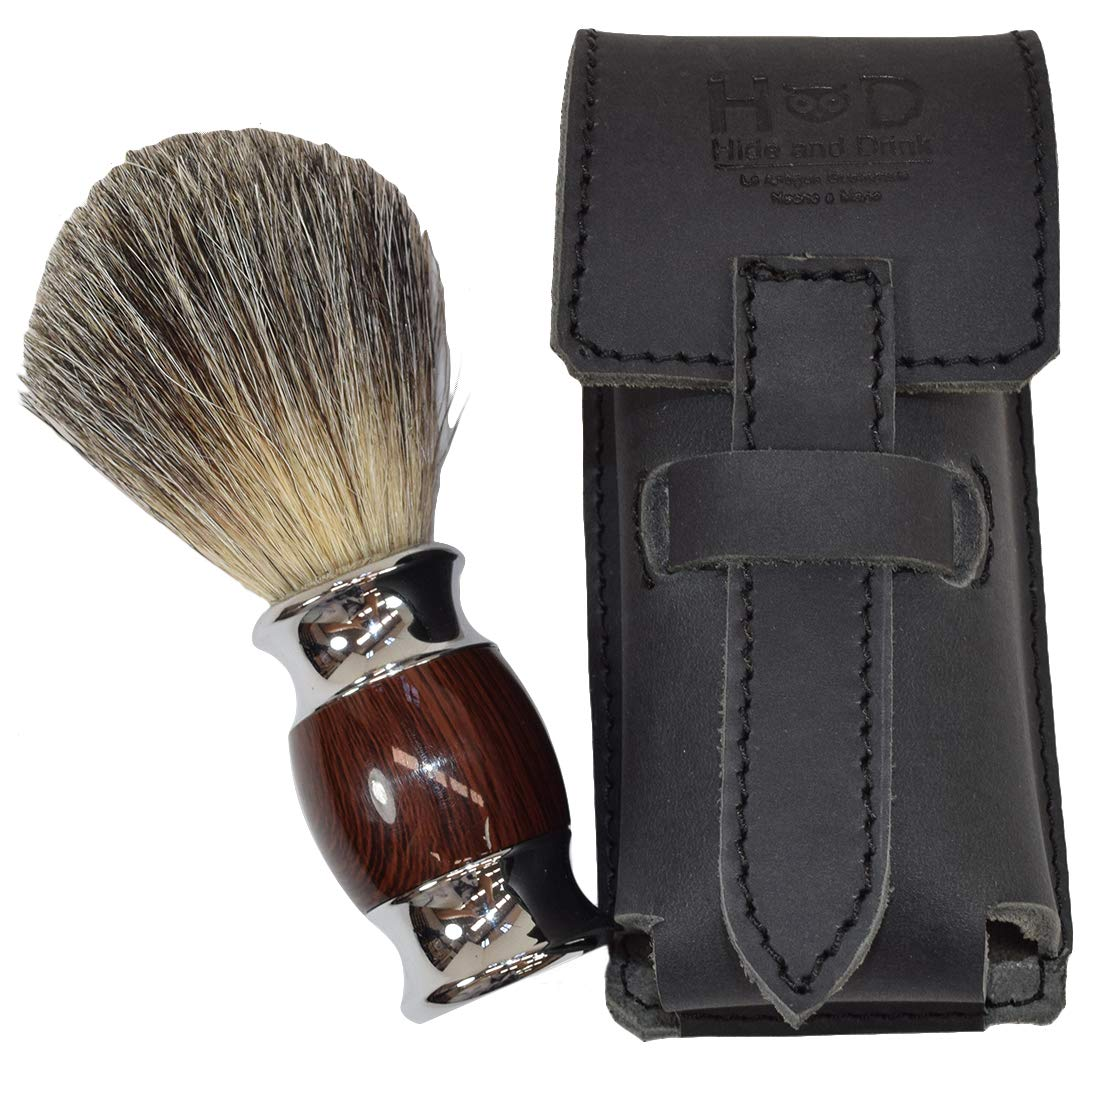 Thick Leather Shaving Brush Case/Travel Protective Sleeve Handmade by Hide & Drink :: Charcoal Black